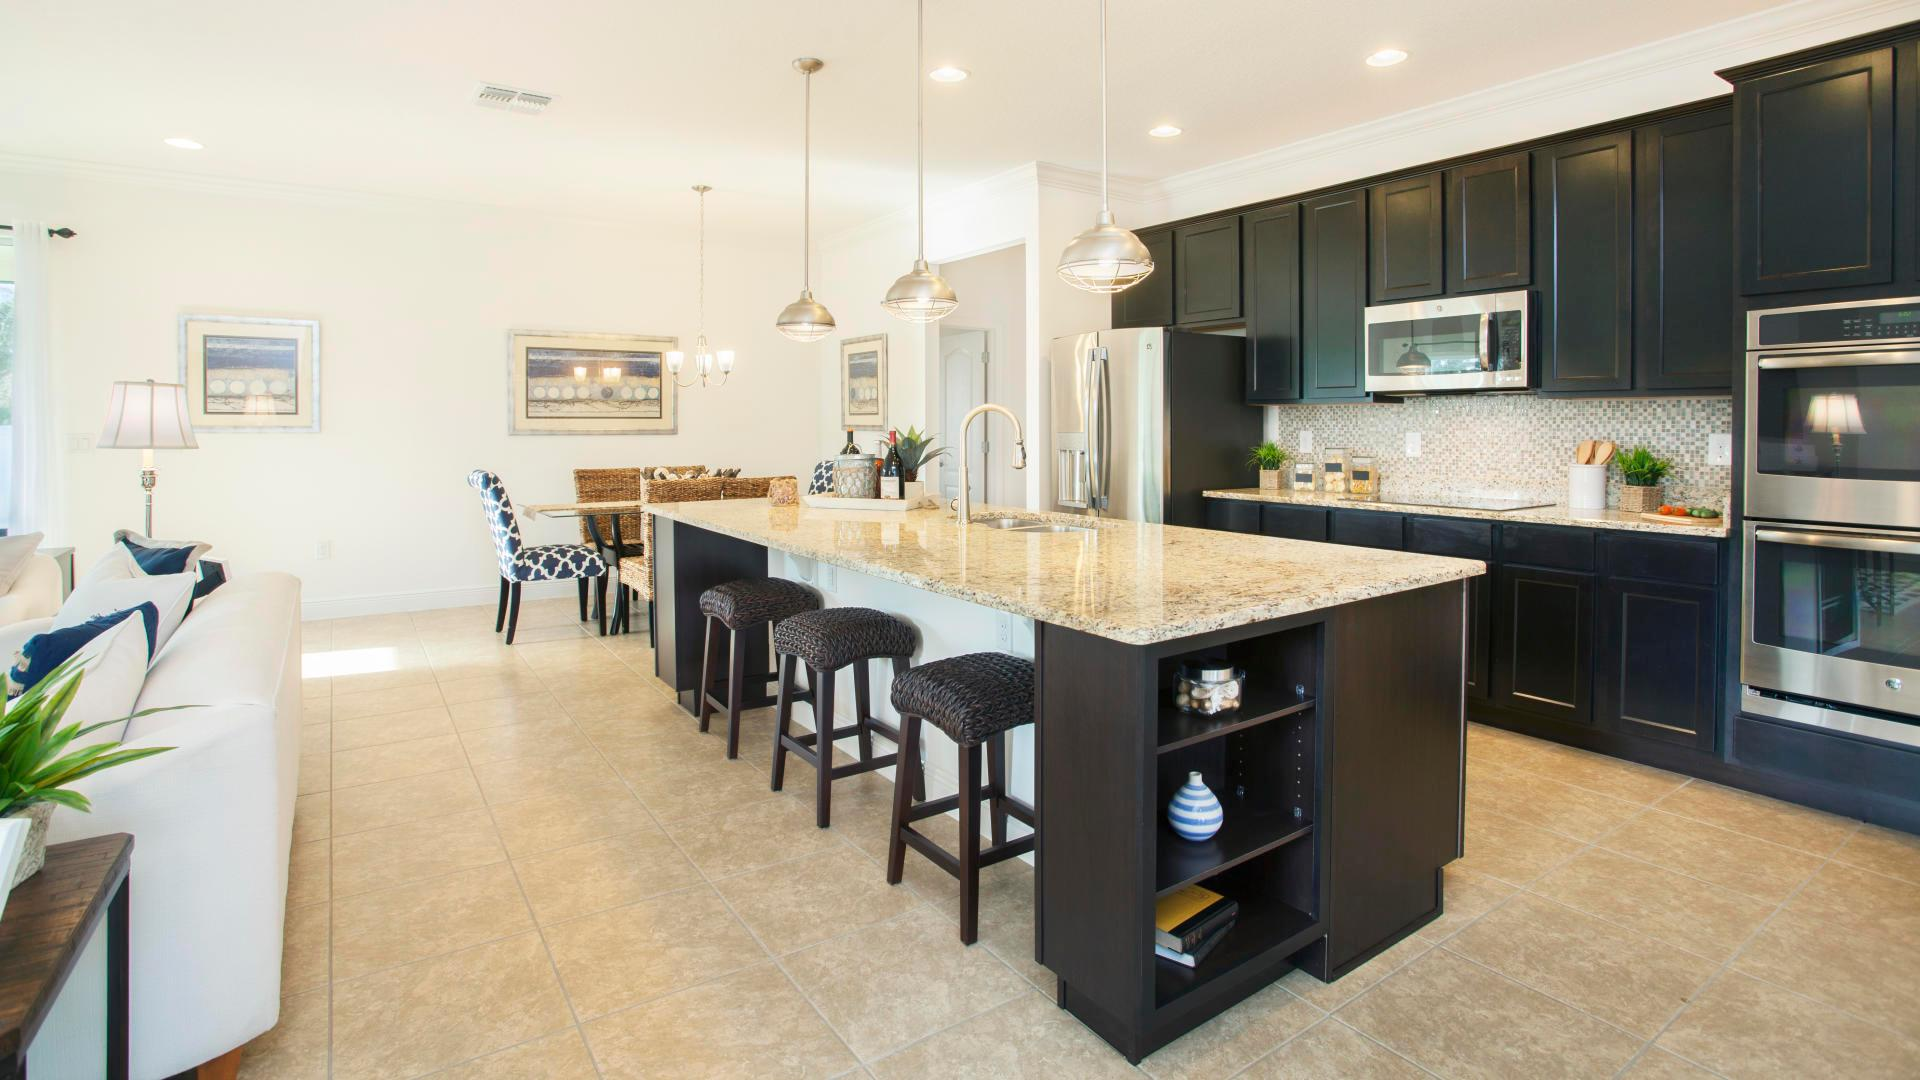 Kitchen featured in the Melody By Maronda Homes in Daytona Beach, FL